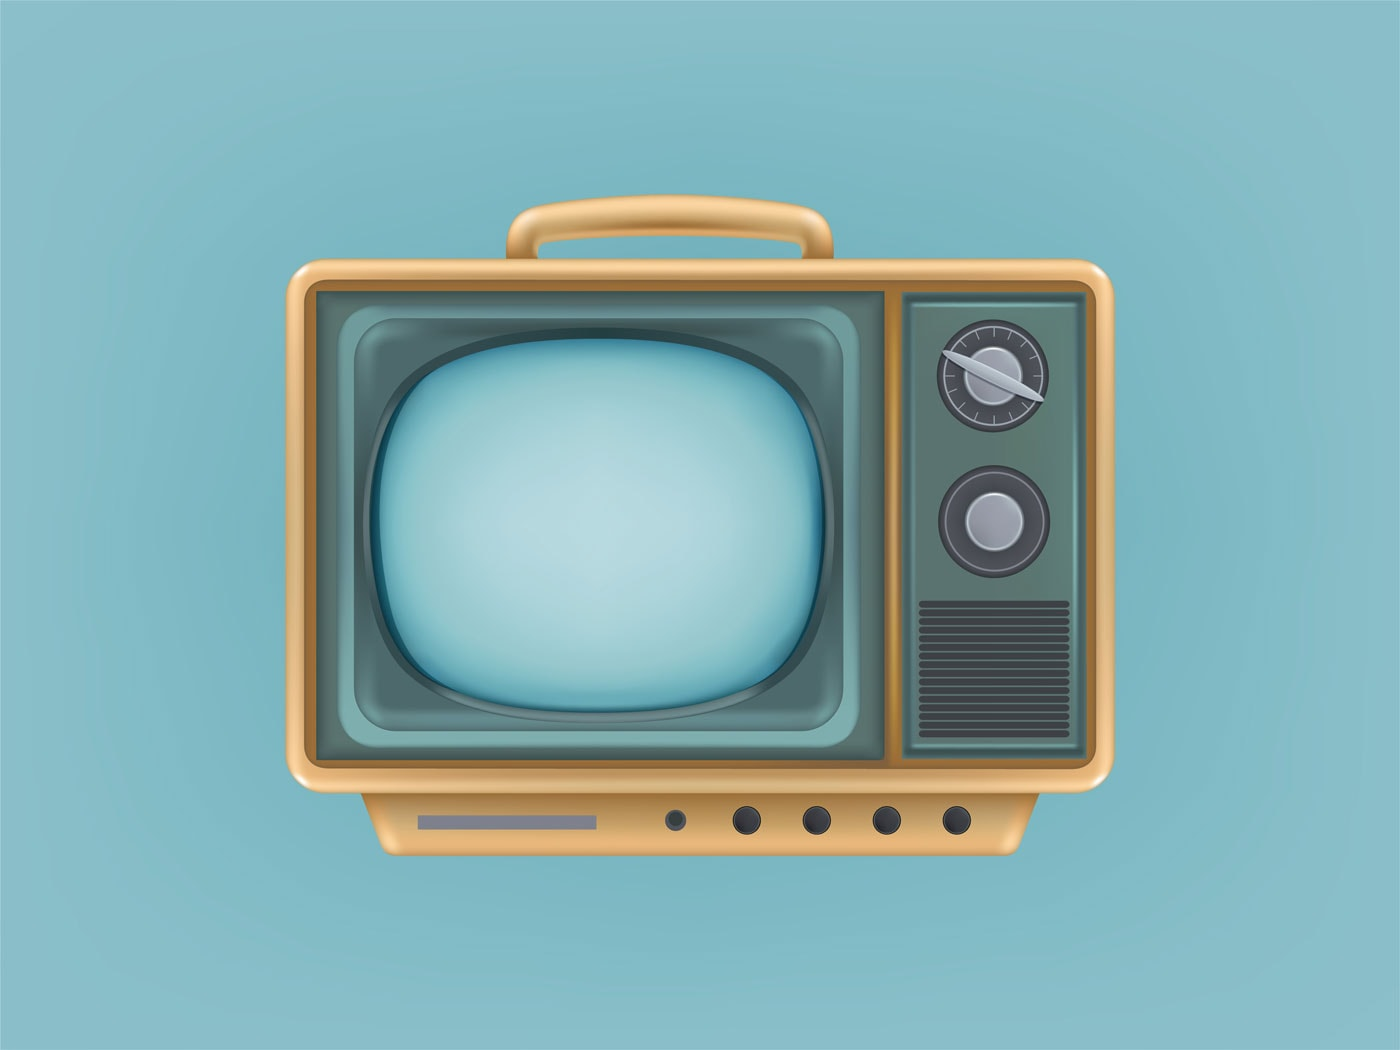 Current Offer In Canada 25 Online TV Services